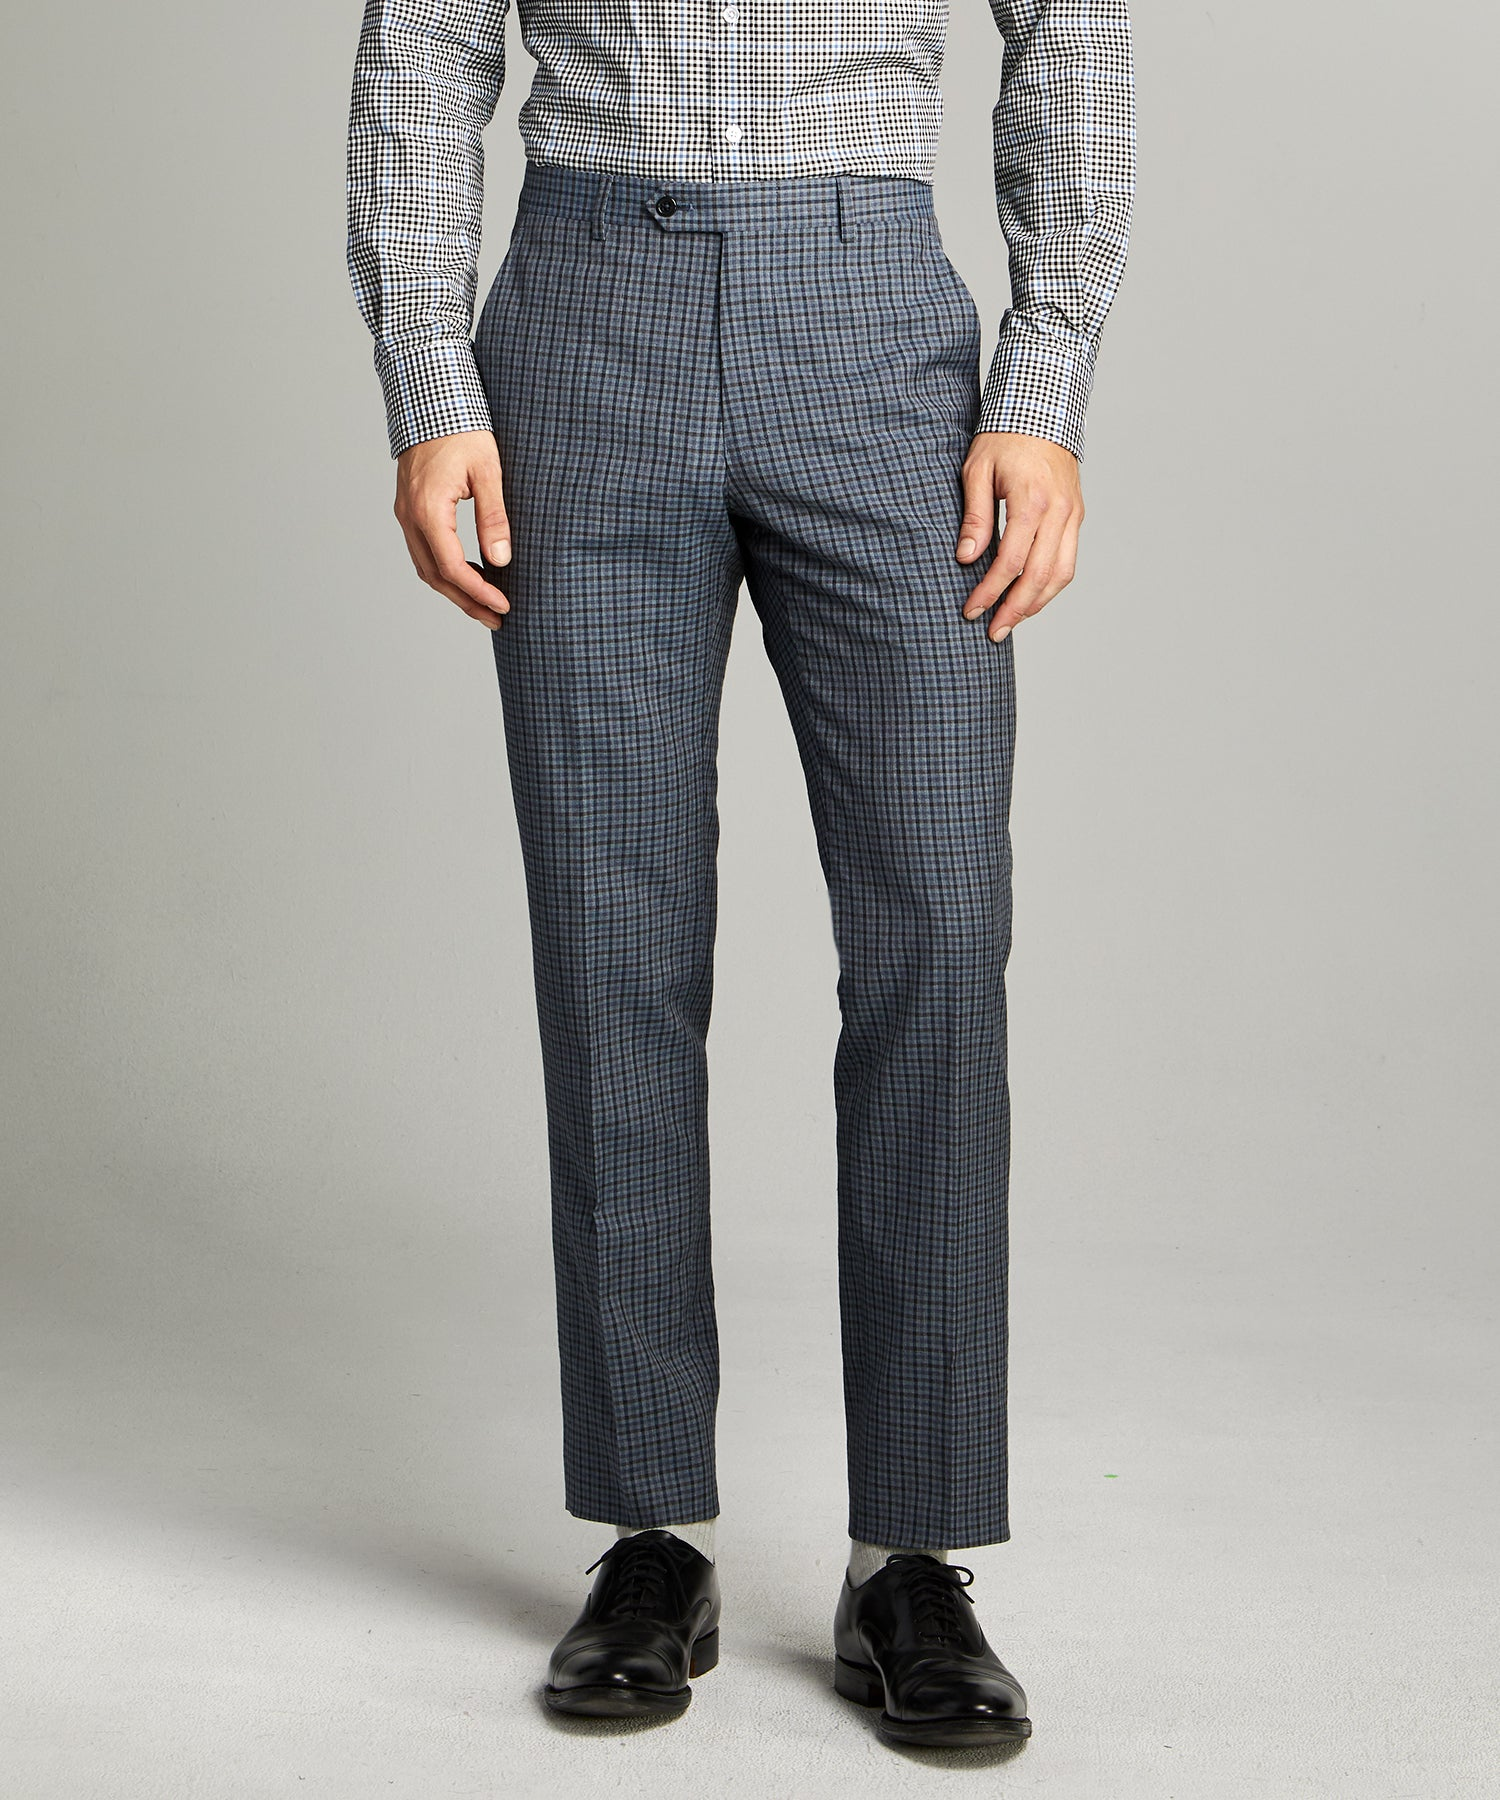 Sutton Wool Linen Suit Trouser in Grey Navy Check